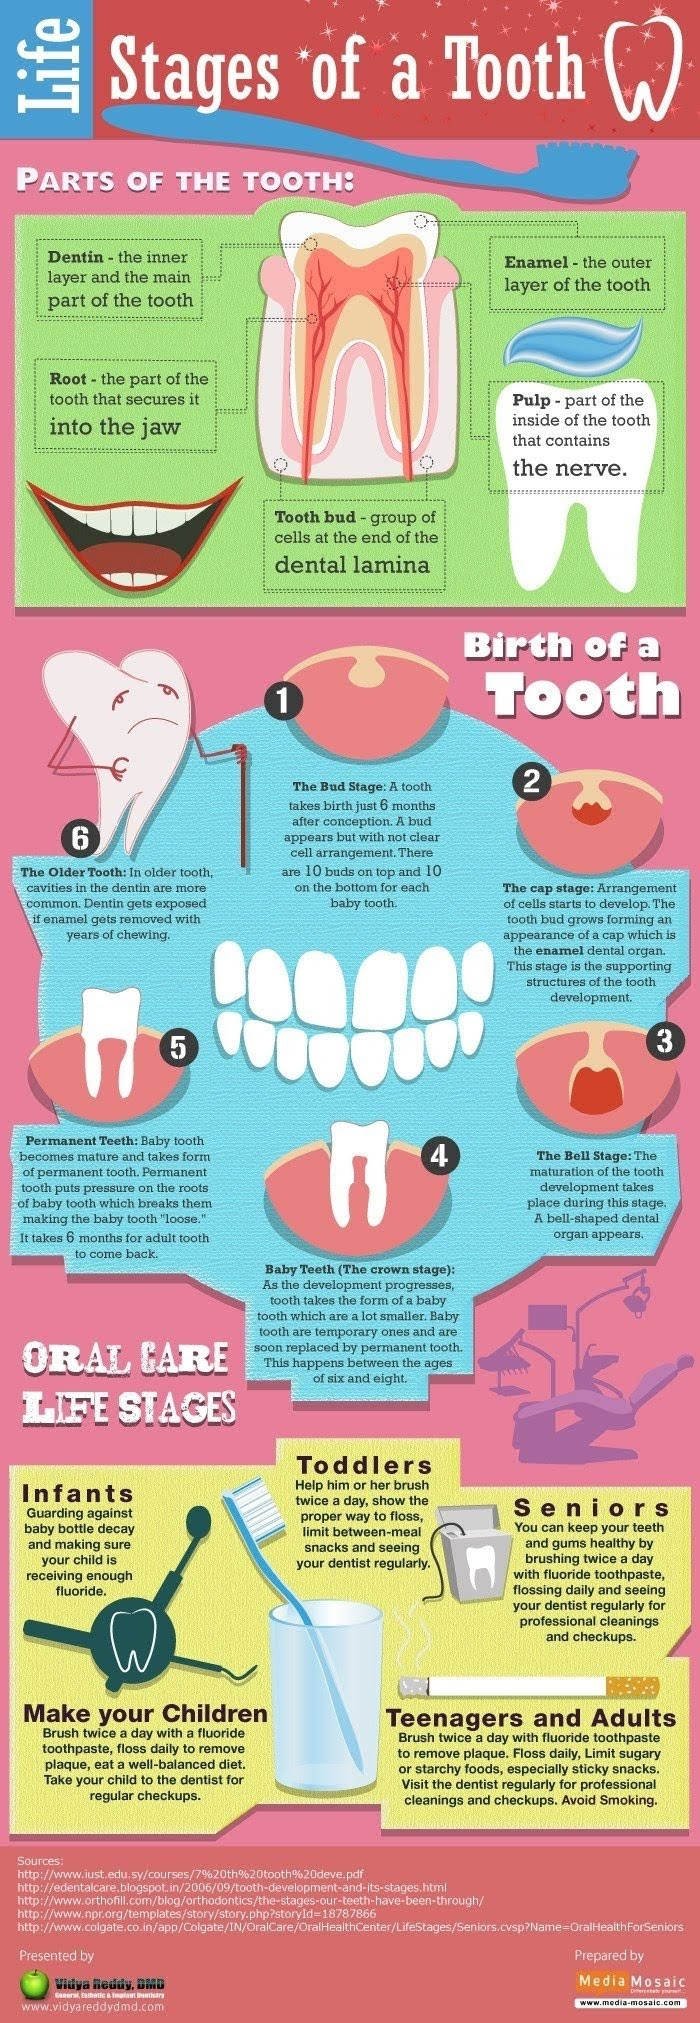 Life Stages of a Tooth #infographic